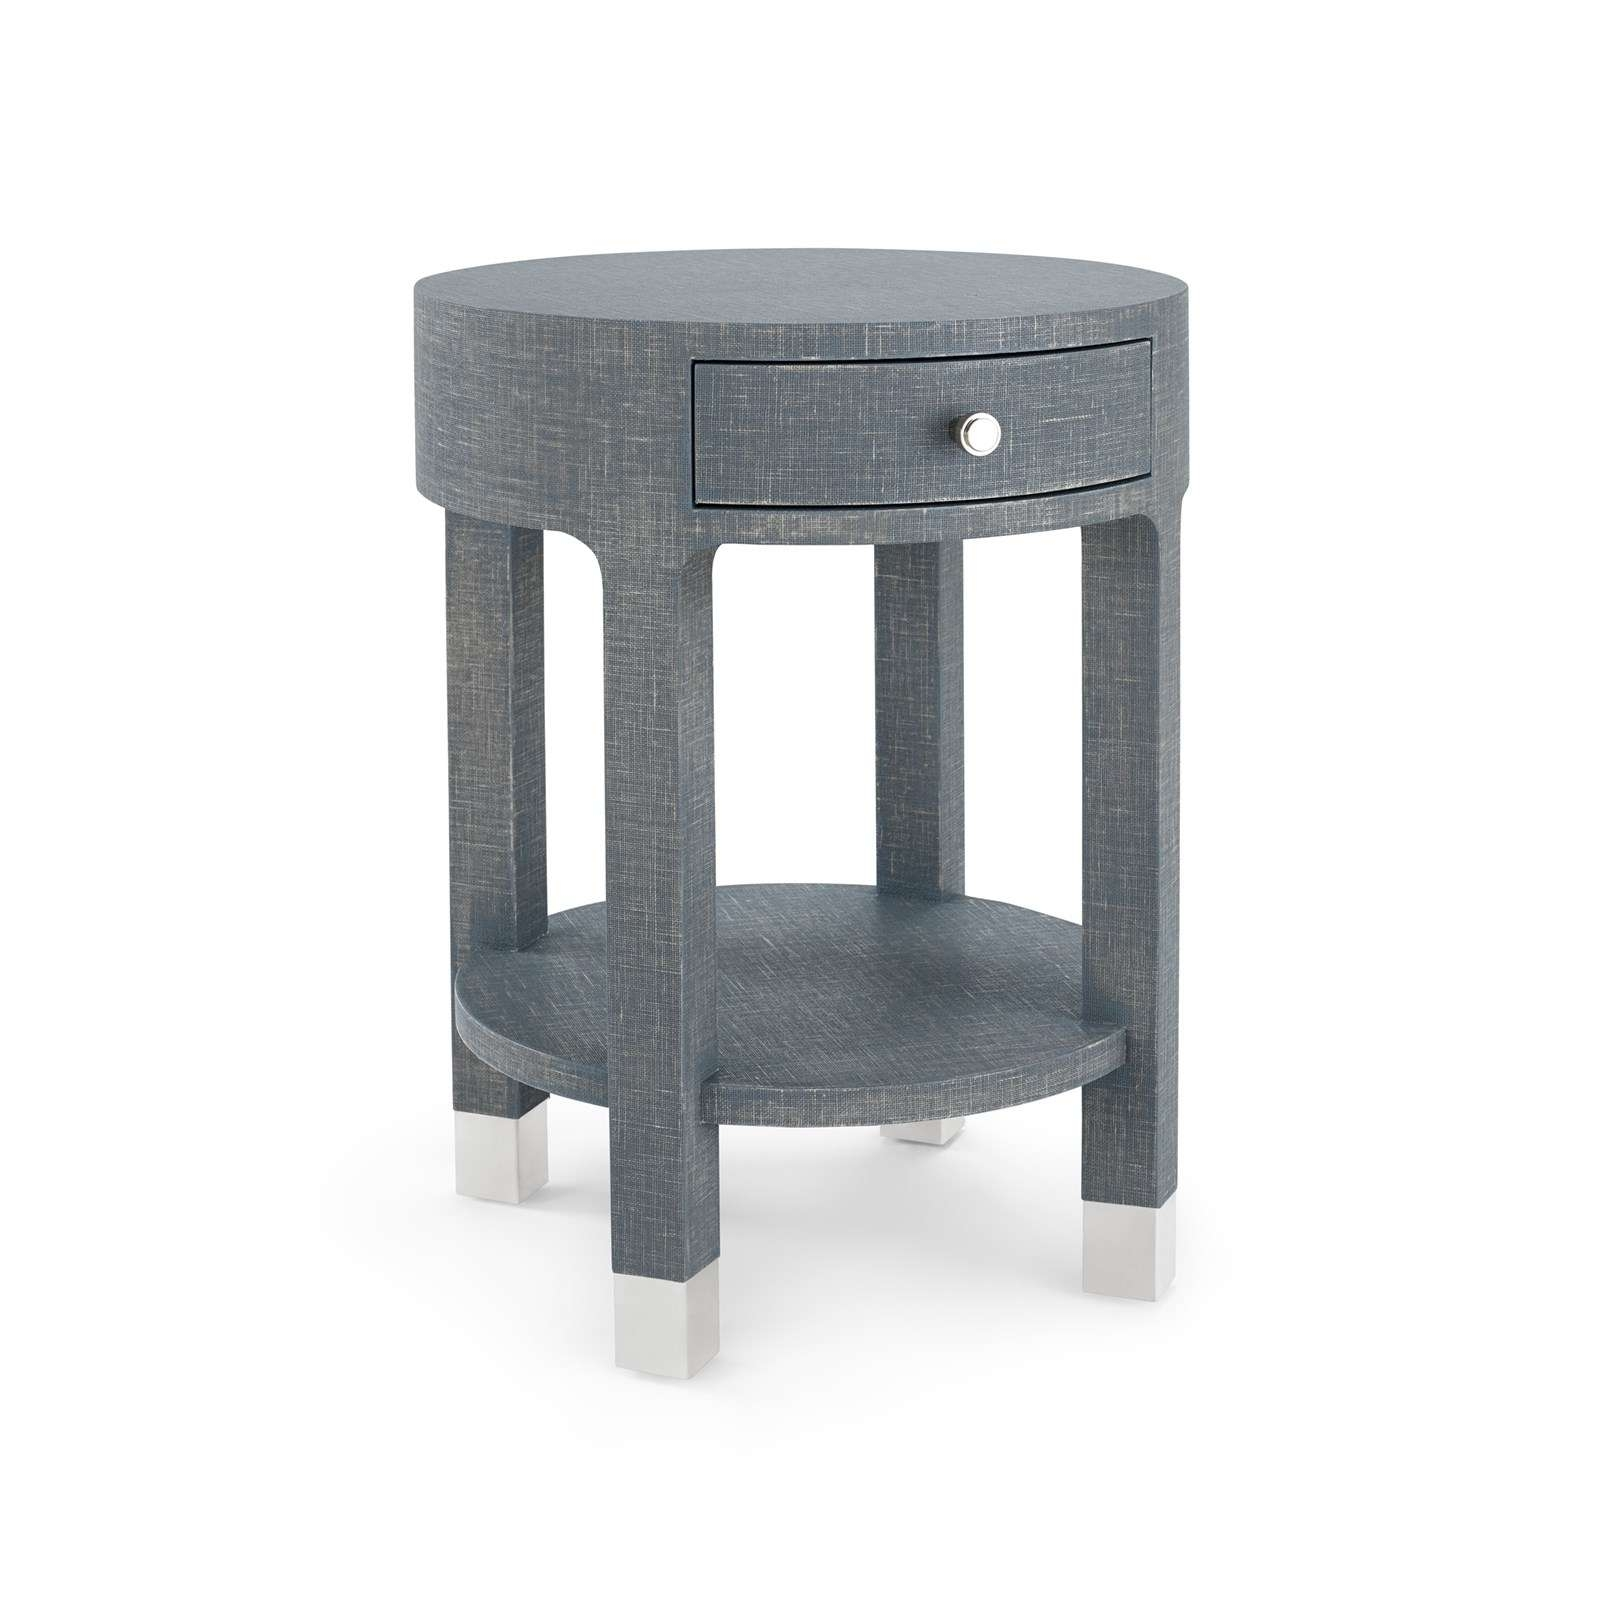 Round Fancy Round Coffee Table Round Accent Table On Round Side With Regard To Popular Round Coffee Tables With Drawer (View 15 of 20)